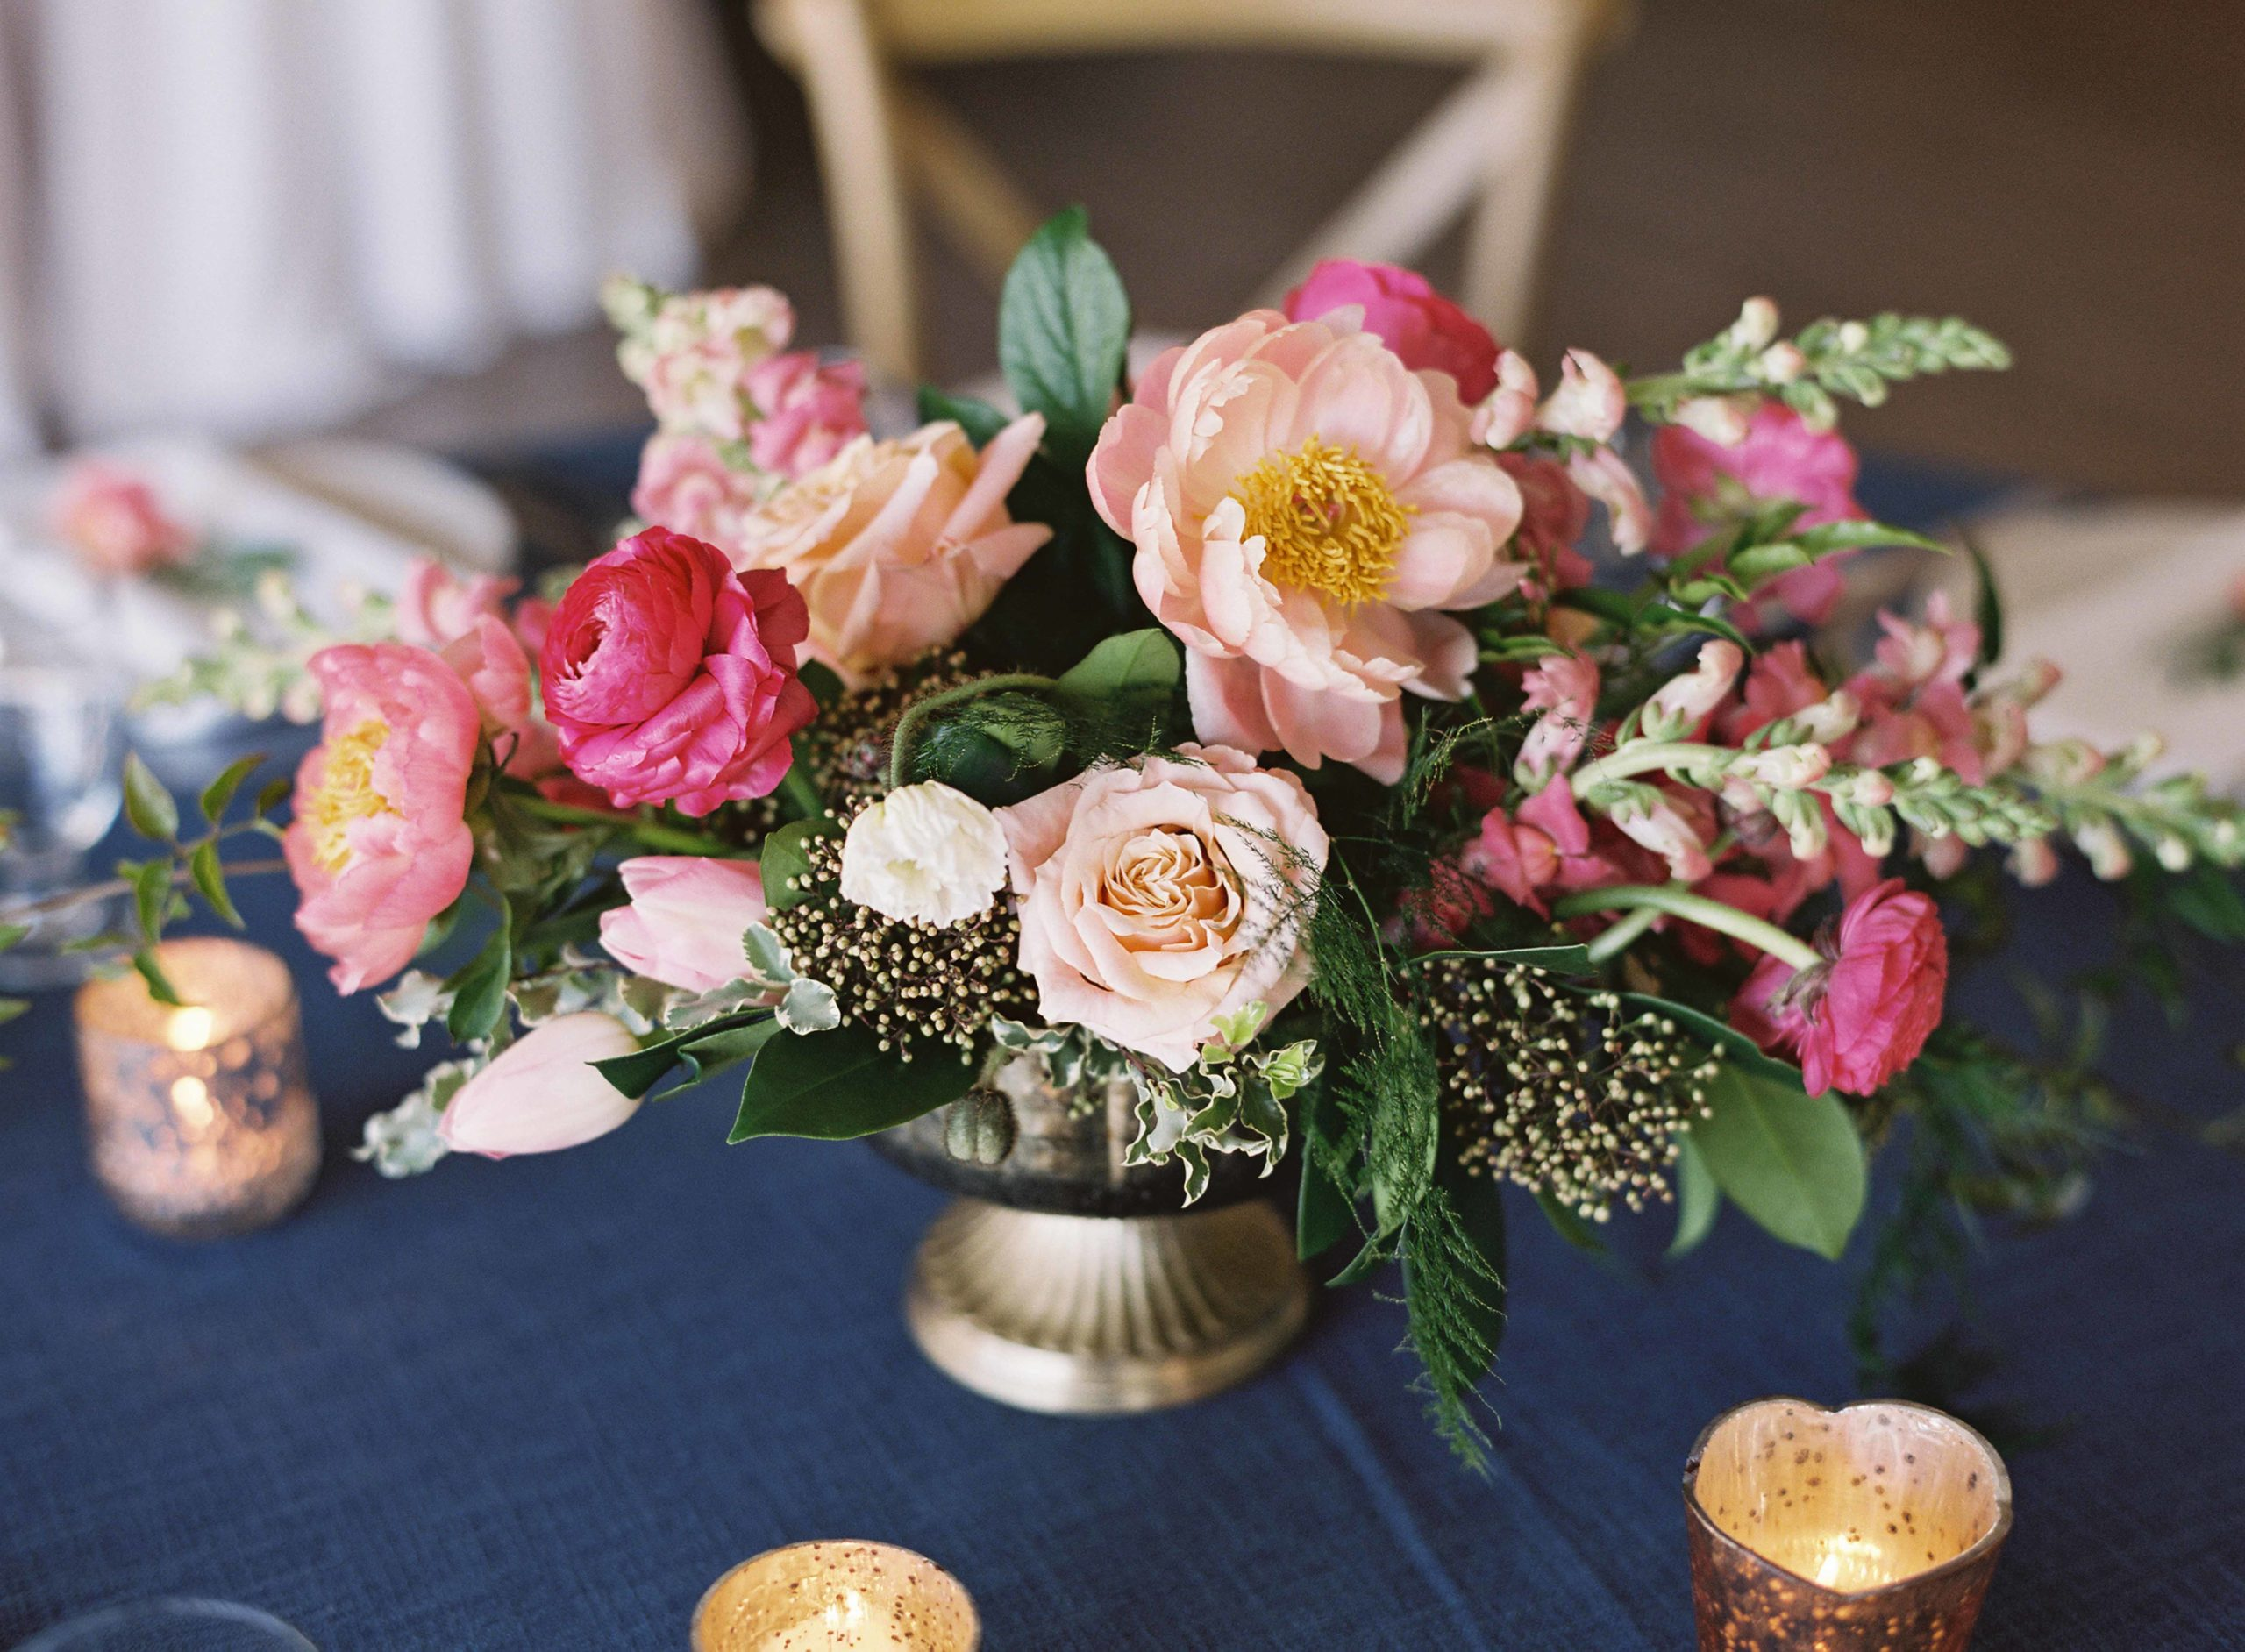 Hot pink and peach wedding centerpiece in gold compote vase - Seattle Wedding Flowers by Flora Nova Design; Hot pink and peach wedding at Roche Harbor Resort